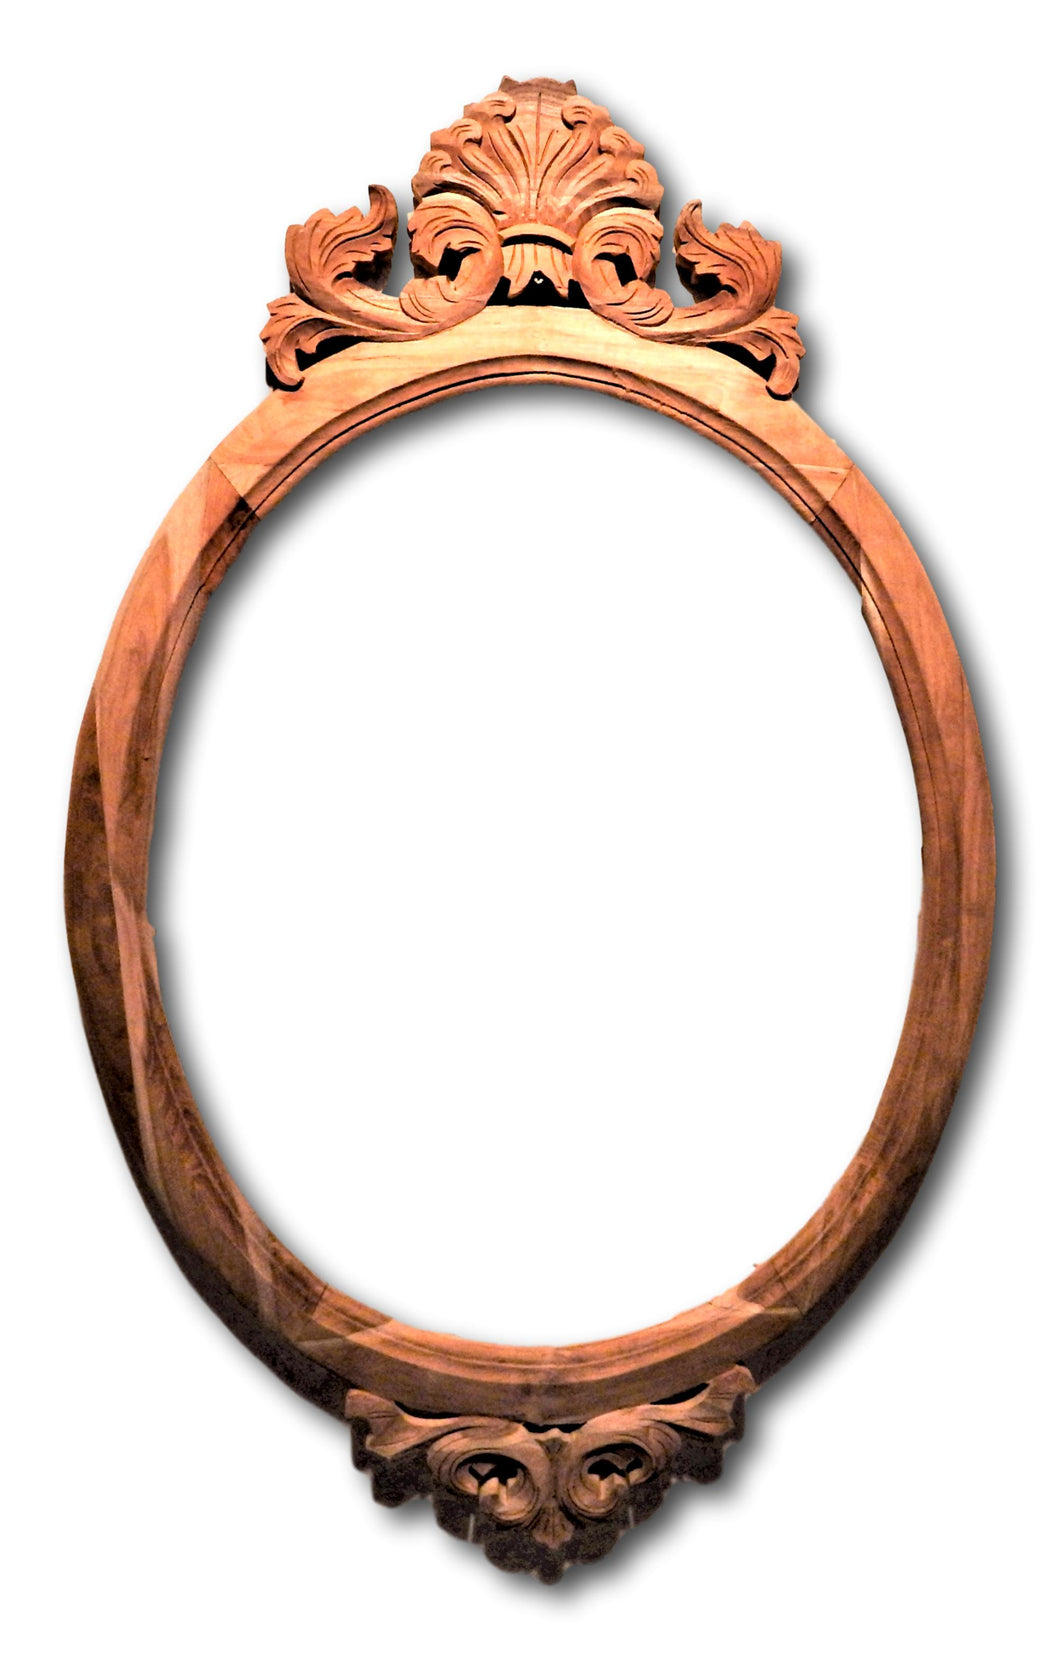 Picture frame handcrafted form Teak wood